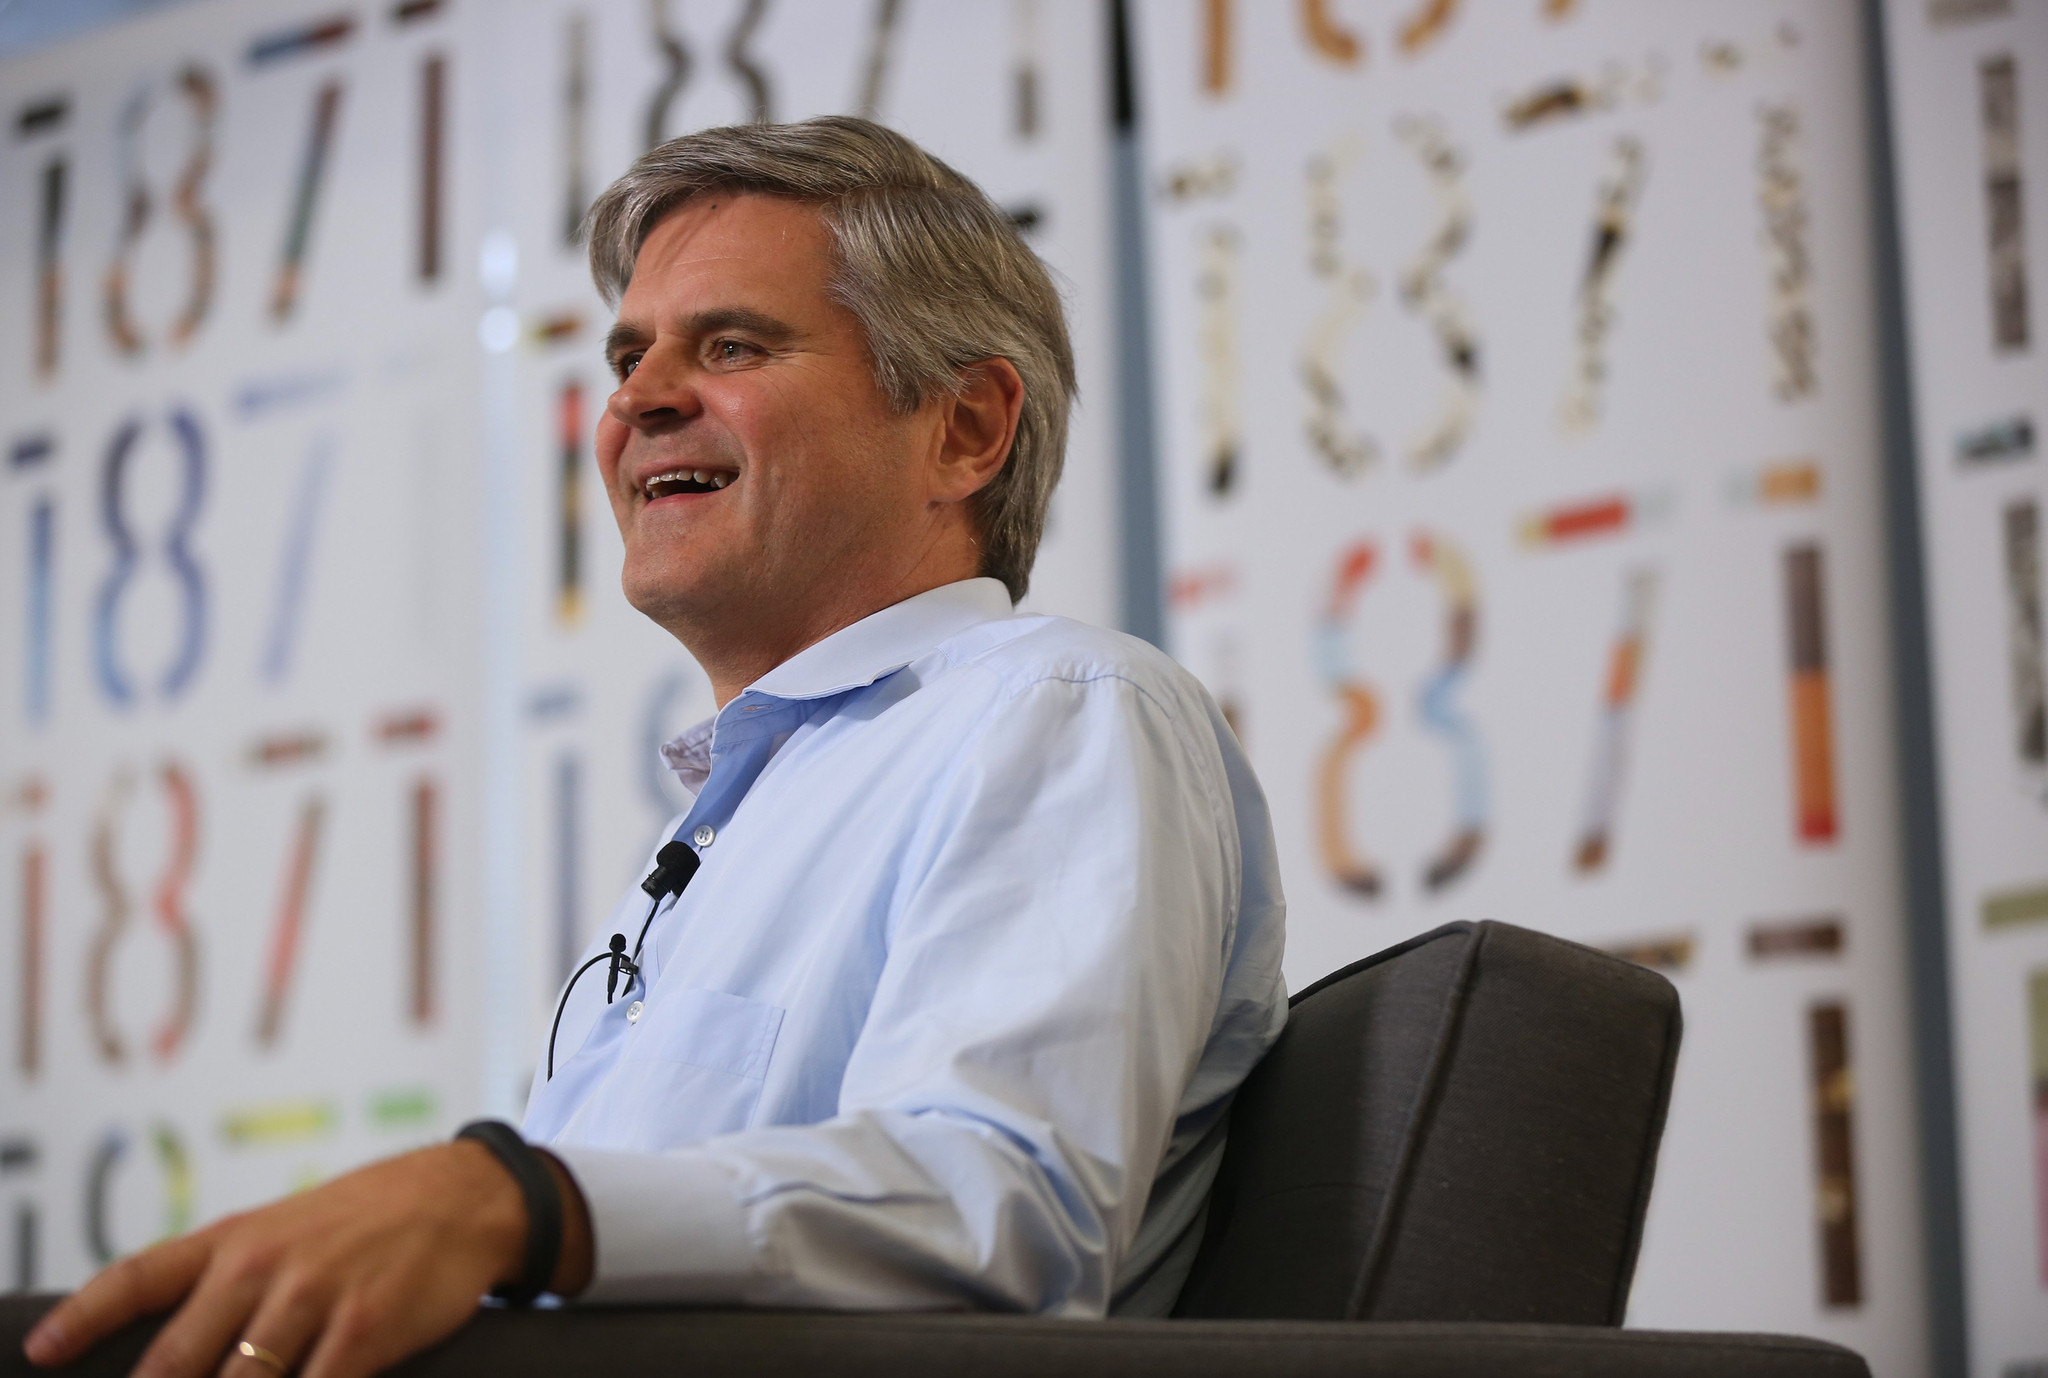 AOL co-founder Steve Case lays out playbook for new wave of startups